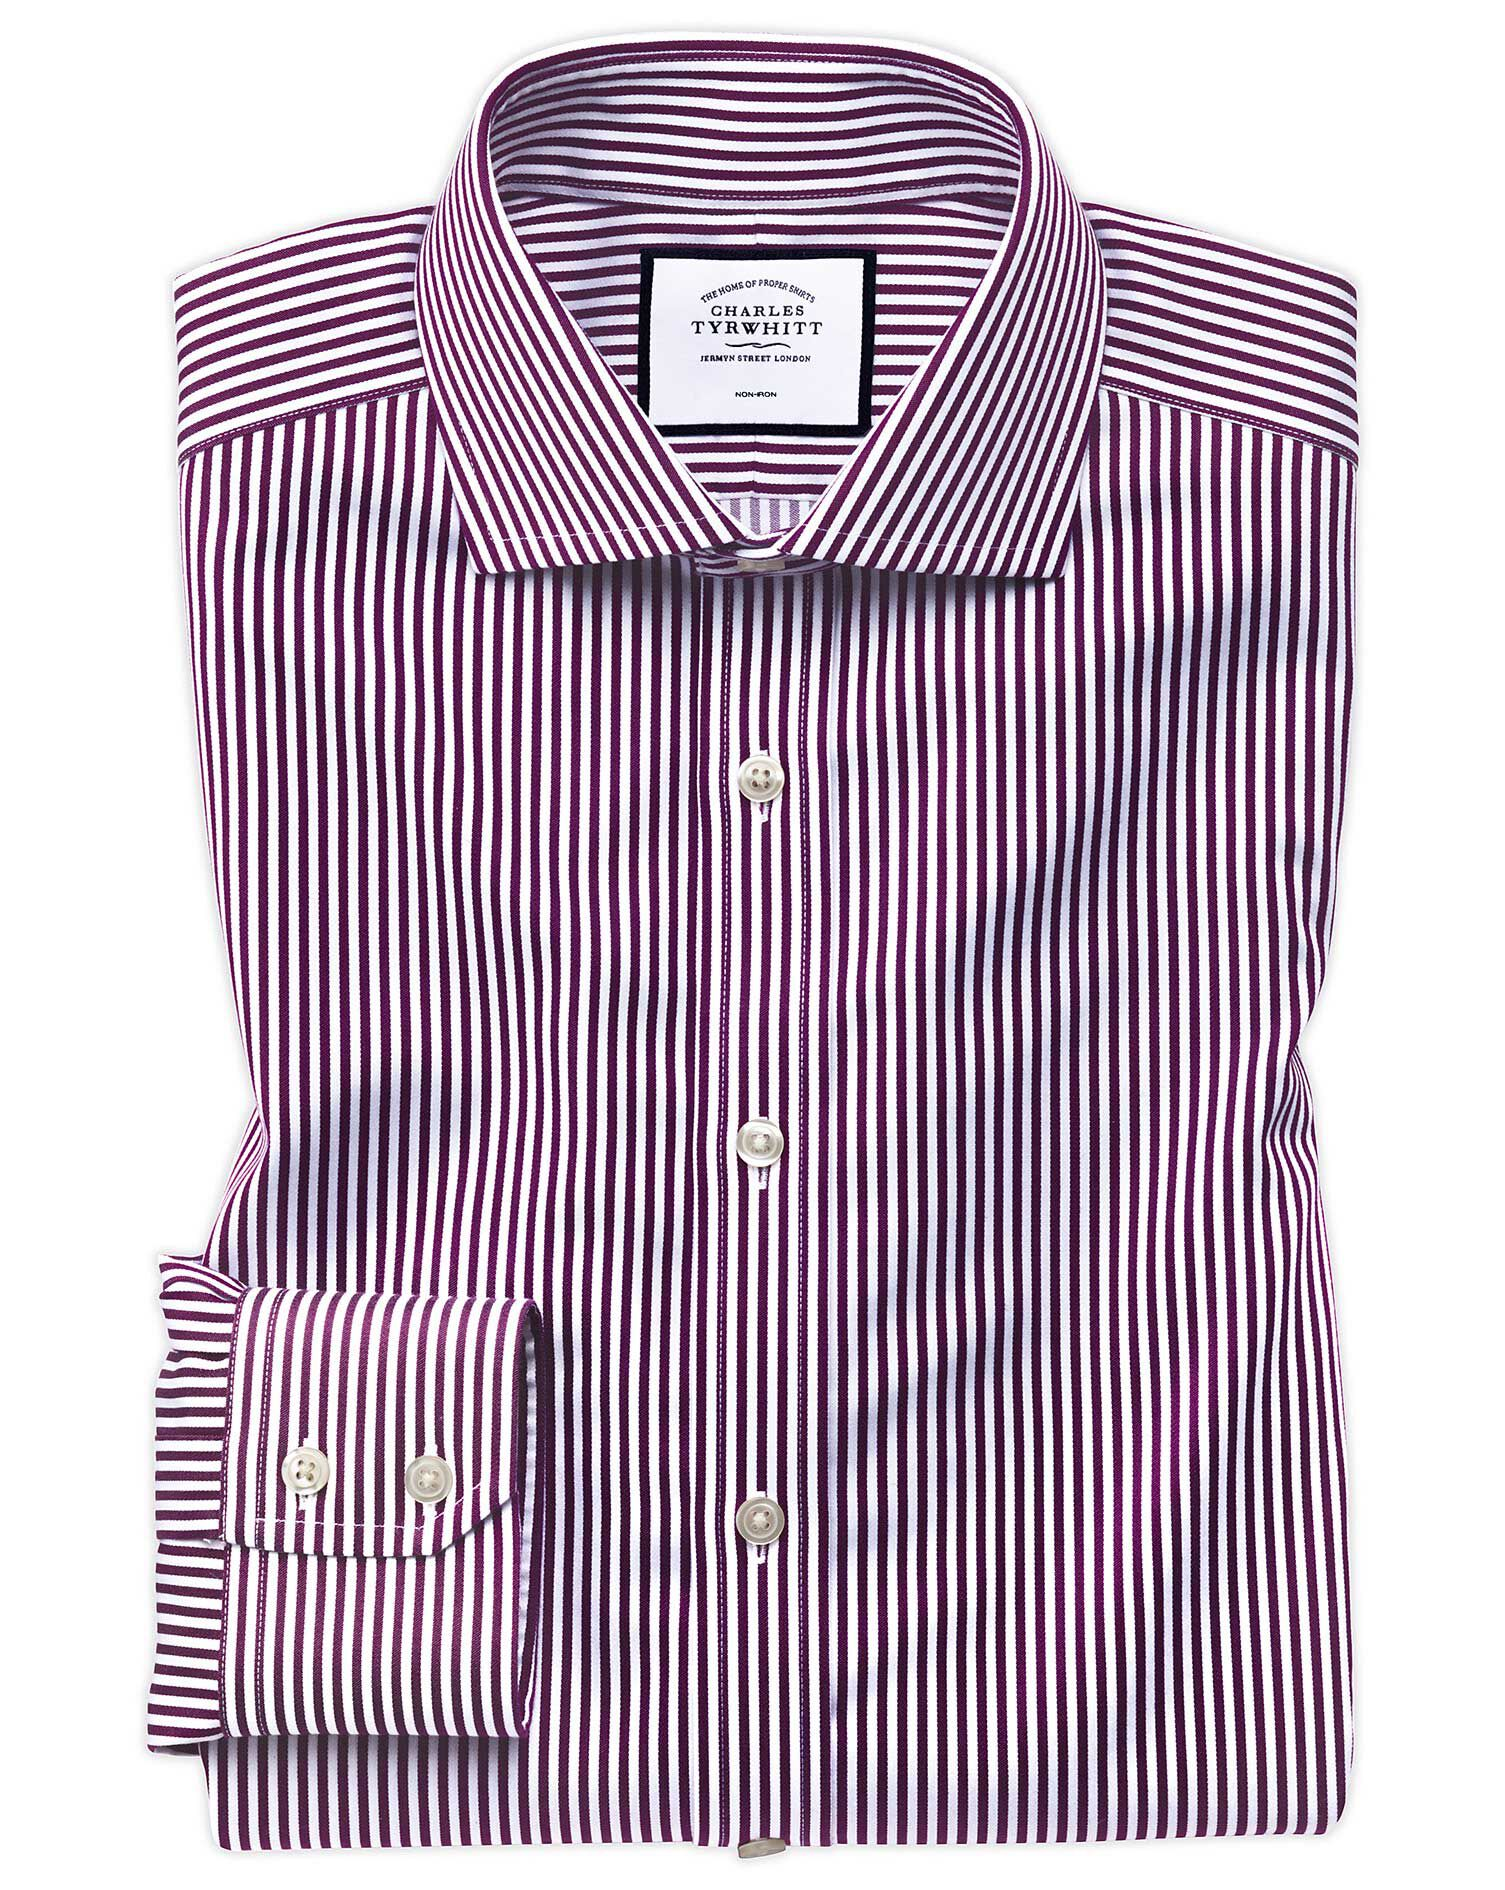 Slim Fit Non-Iron Cutaway Collar Berry Twill Stripe Cotton Formal Shirt Single Cuff Size 16.5/36 by